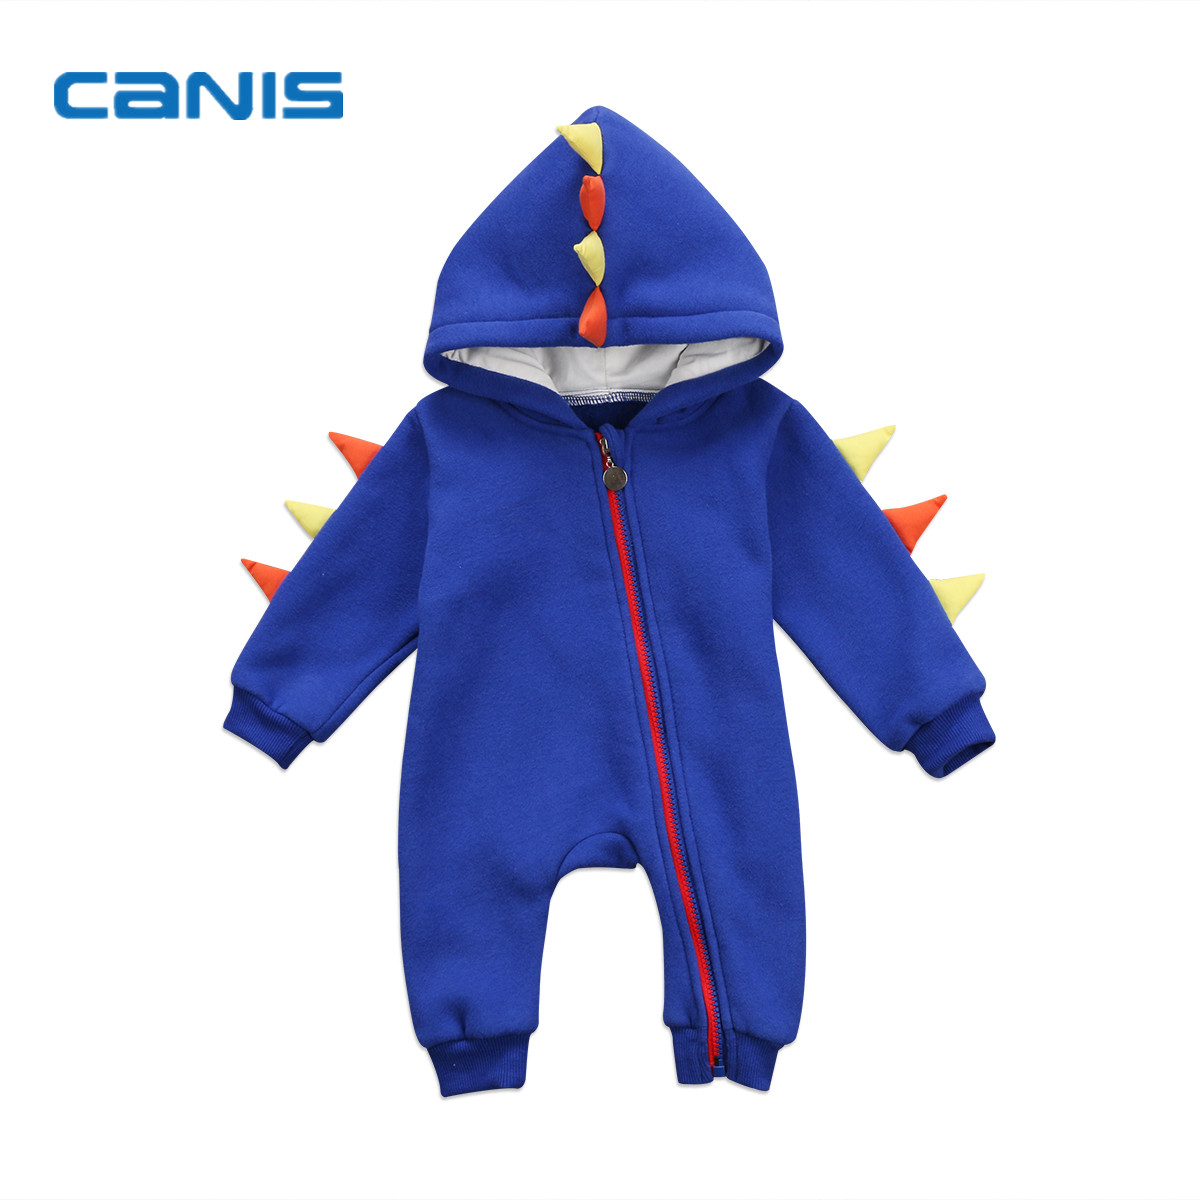 2017 Brand New Cartoon Newborn Toddler Infant Baby Boy Girl Long Sleeve Hoodie Romper Dinosaur Jumpsuit Outfits Dragon Clothes spring brand romper baby boys girls clothes children toddler long sleeve jumpsuit cartoon newborn infant cardigan coat clothing